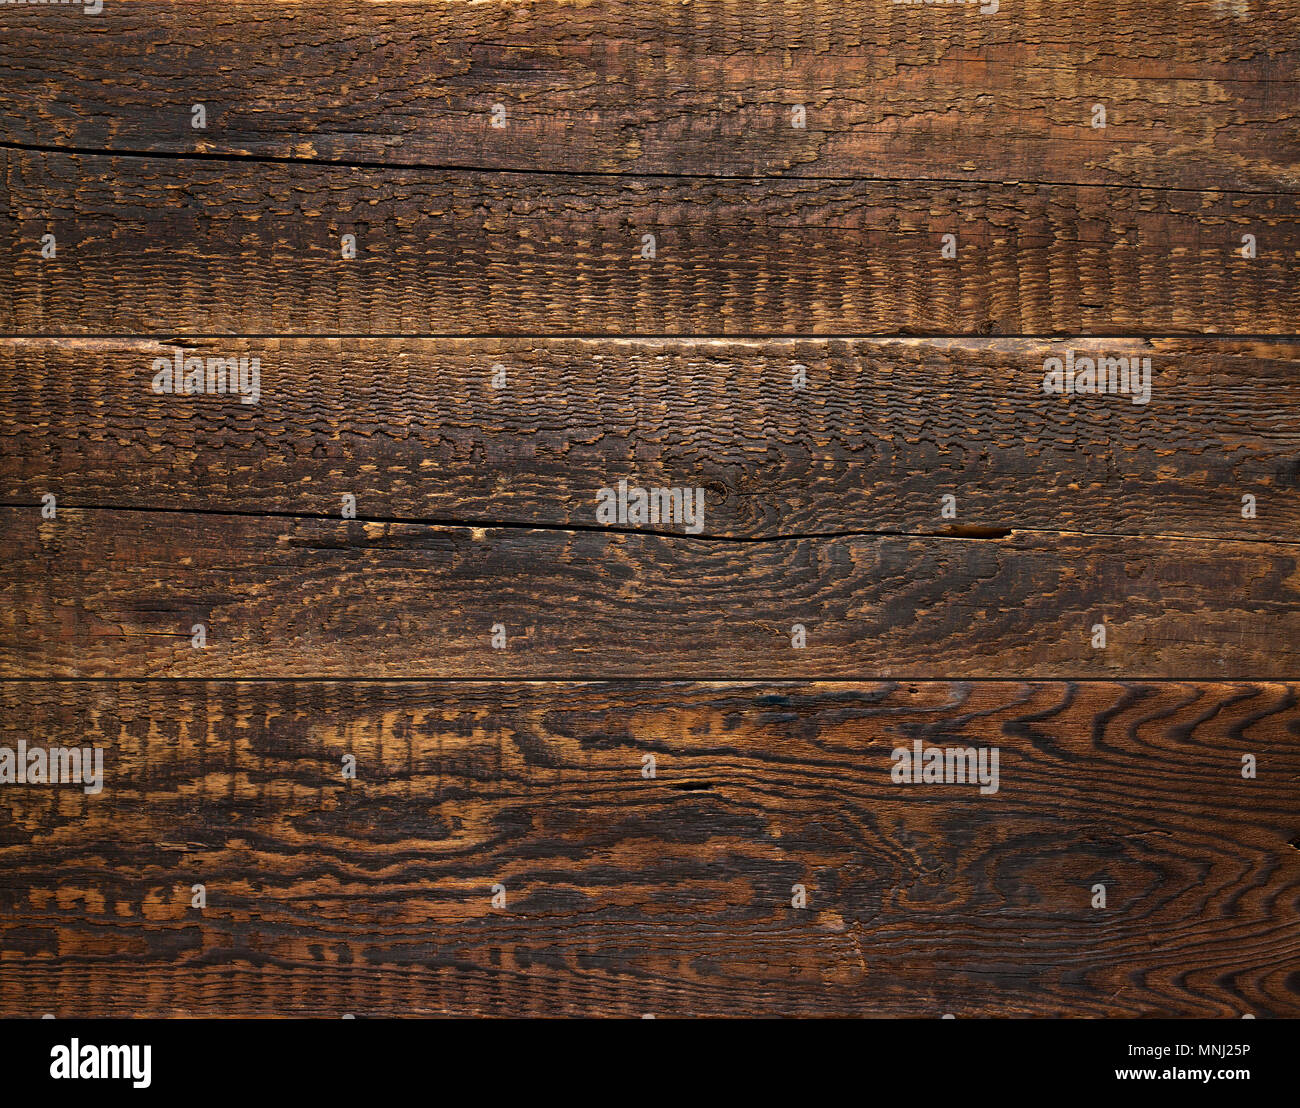 Wall of old charred boards as a background. - Stock Image